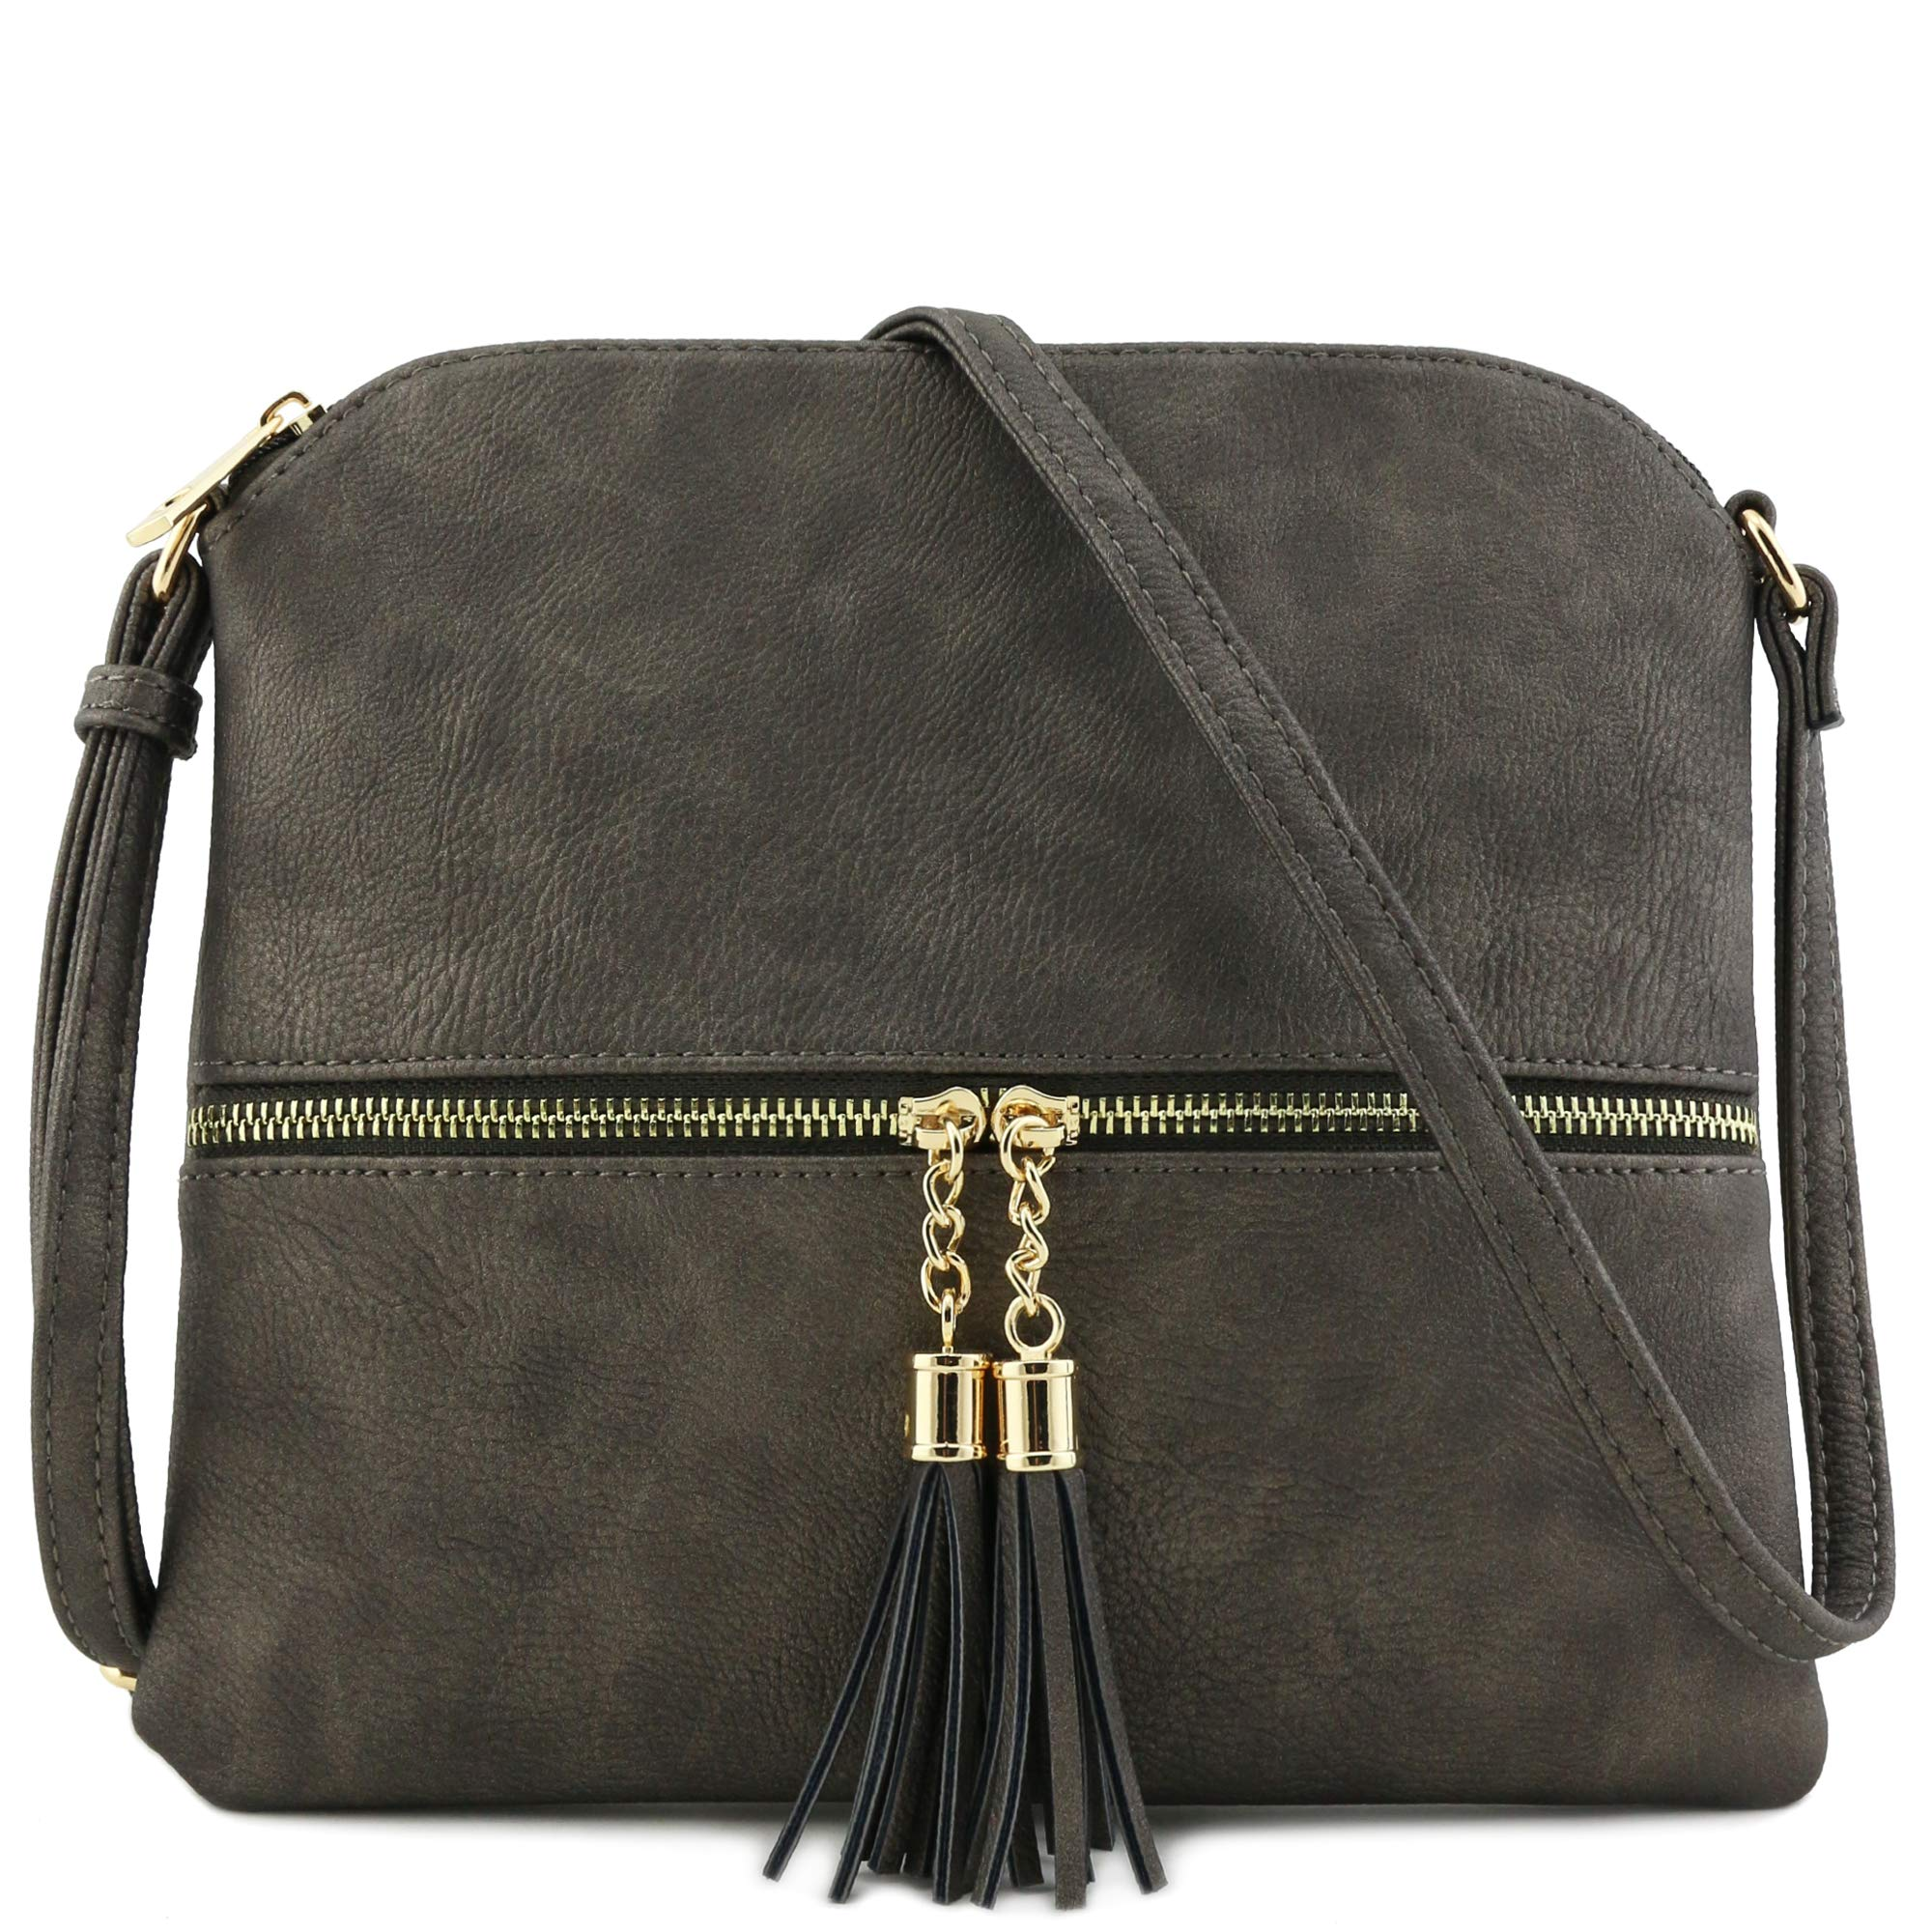 Lightweight Medium Crossbody Bag with Tassel (Pewter) by DELUXITY (Image #1)